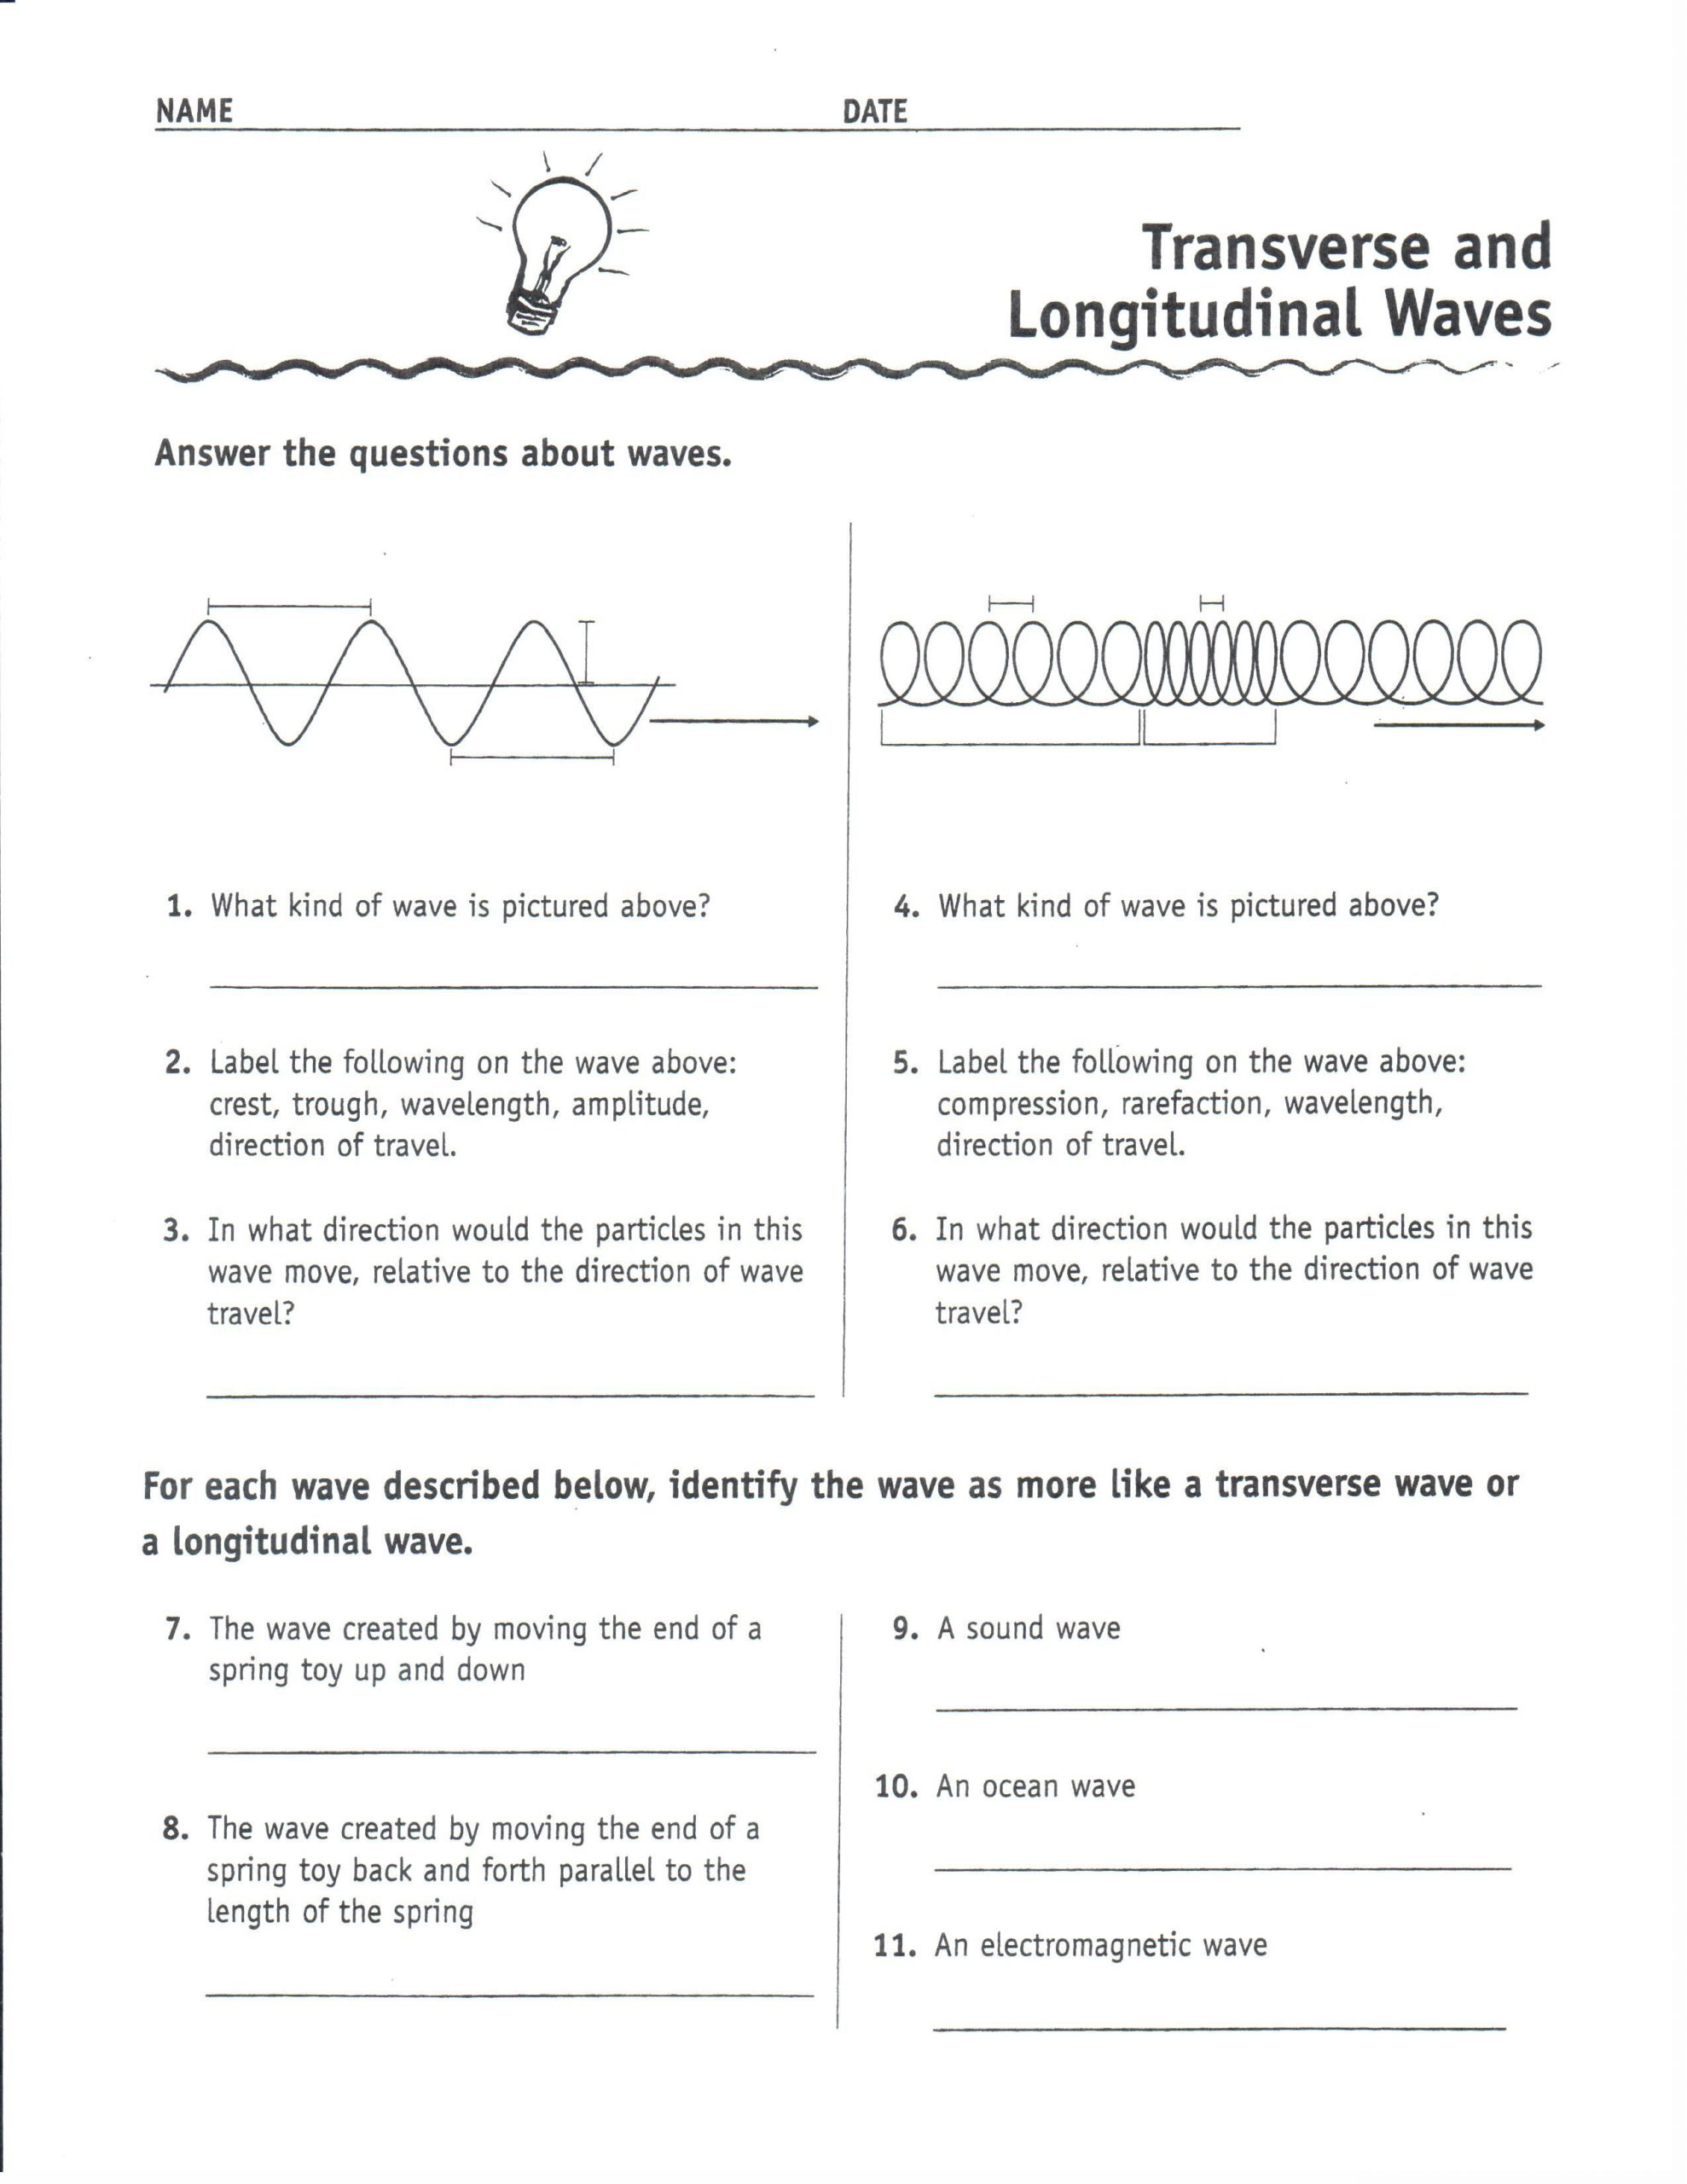 Waves Worksheet 1 Answers Physical Science Transverse and Longitudinal Waves 1uyxl0i